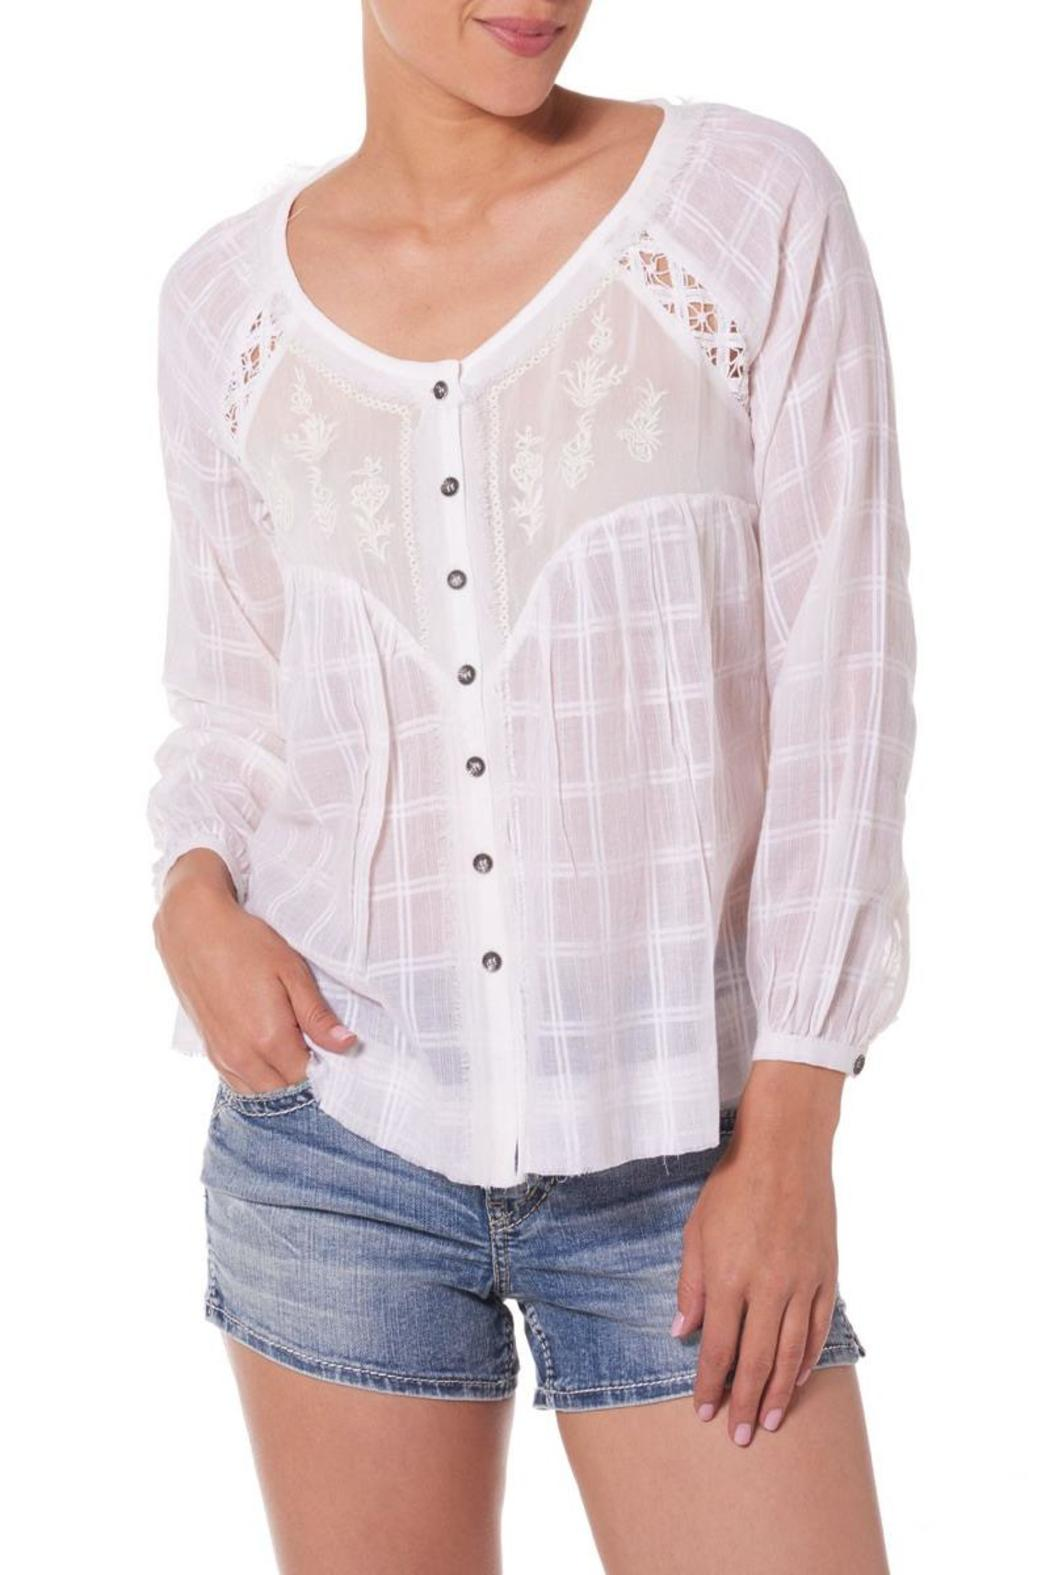 Silver Jeans Co. Embroidered Peasant Blouse - Main Image